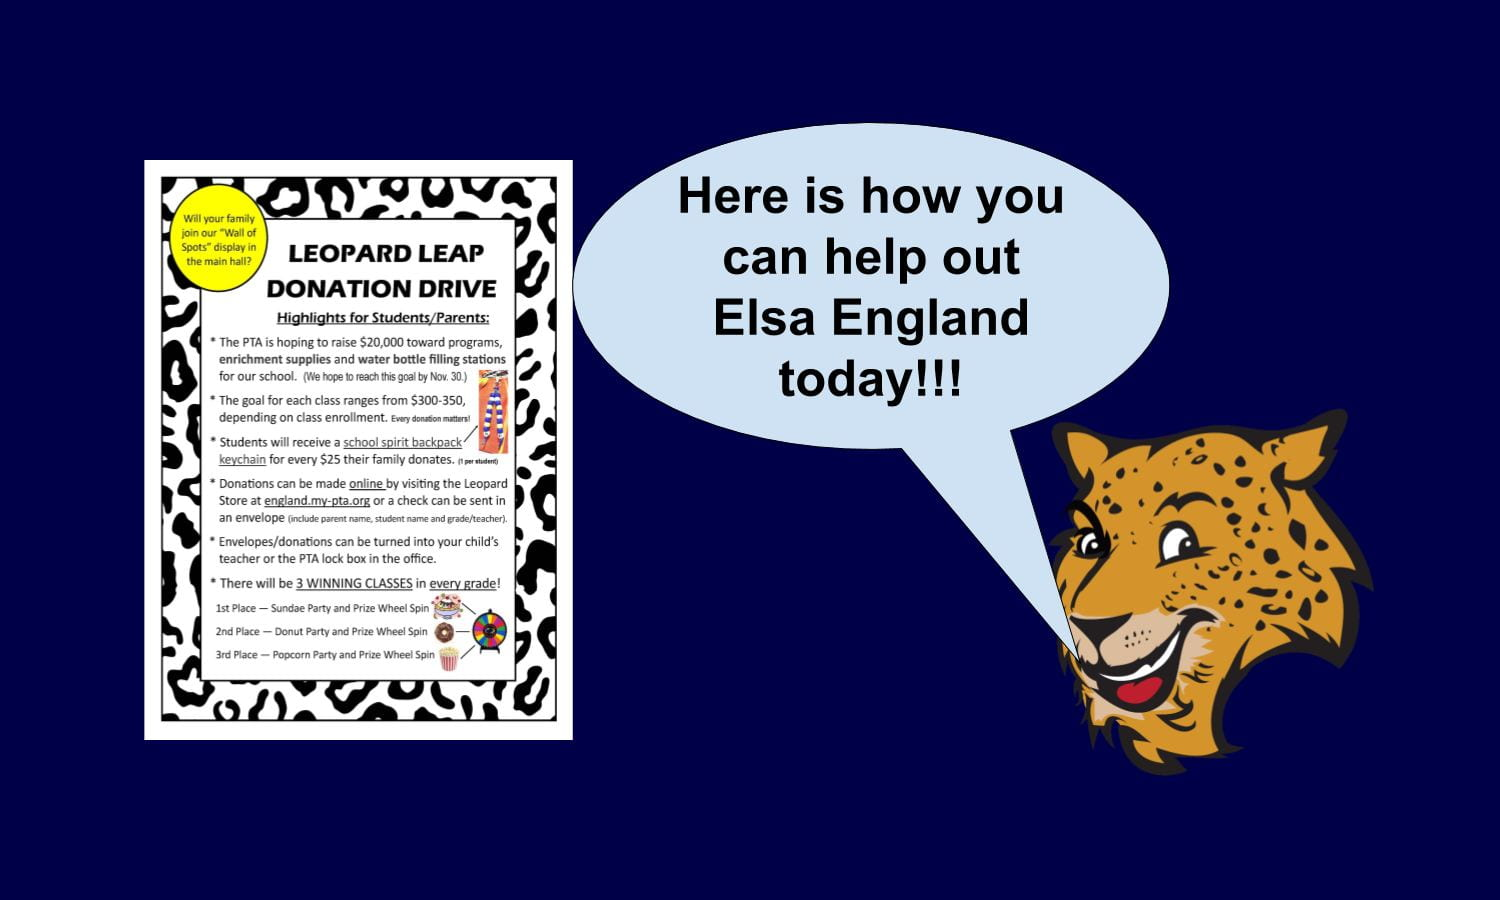 The Leopard Leap Donation Drive is Happening Now!